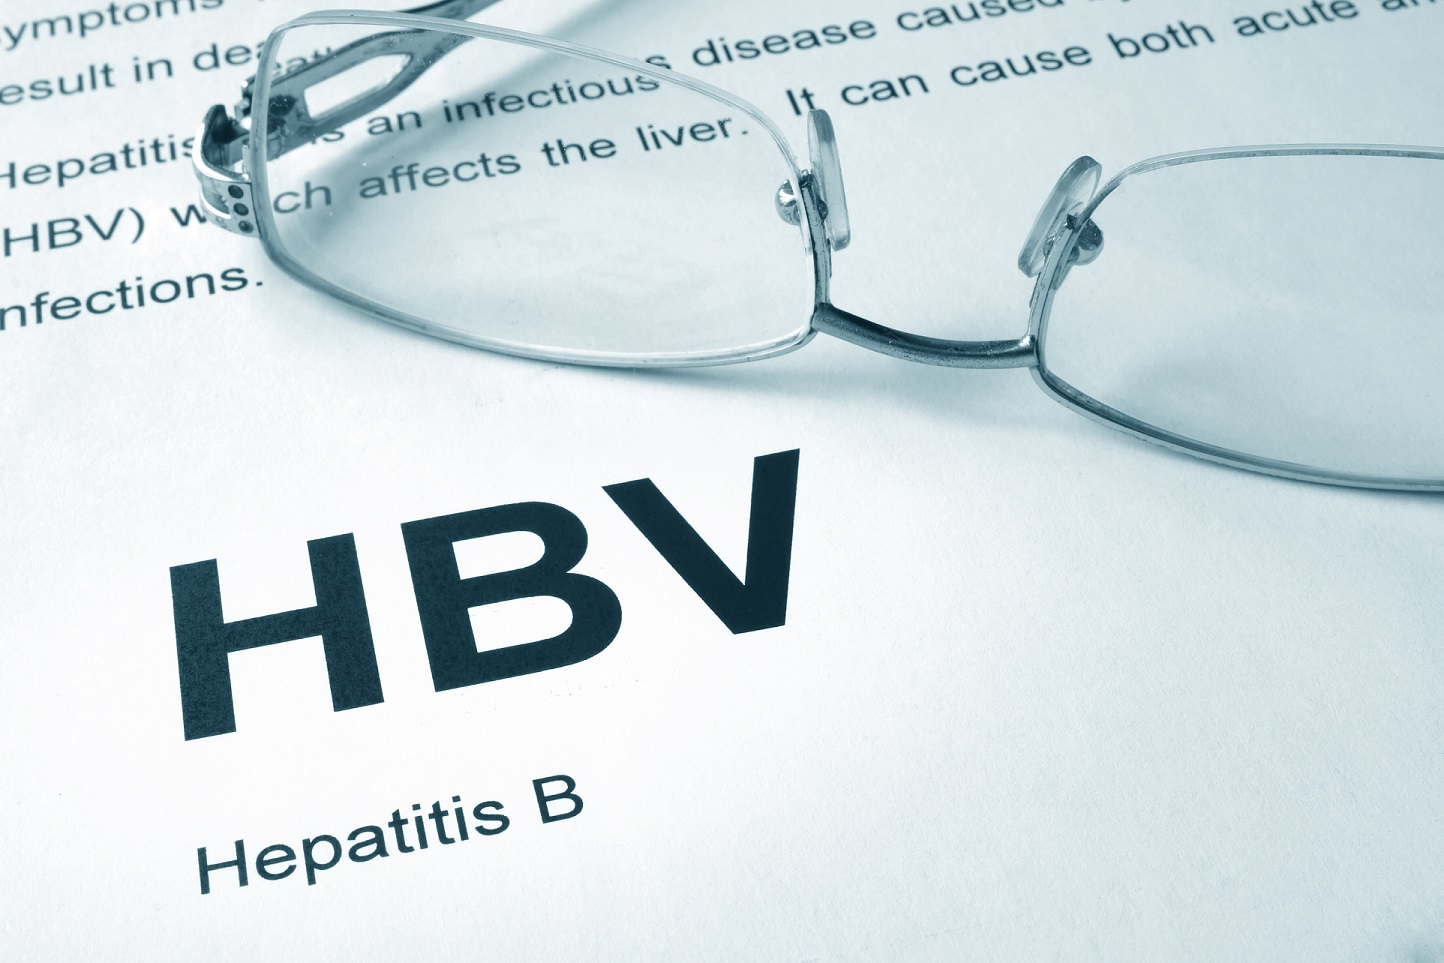 hepatitis B text